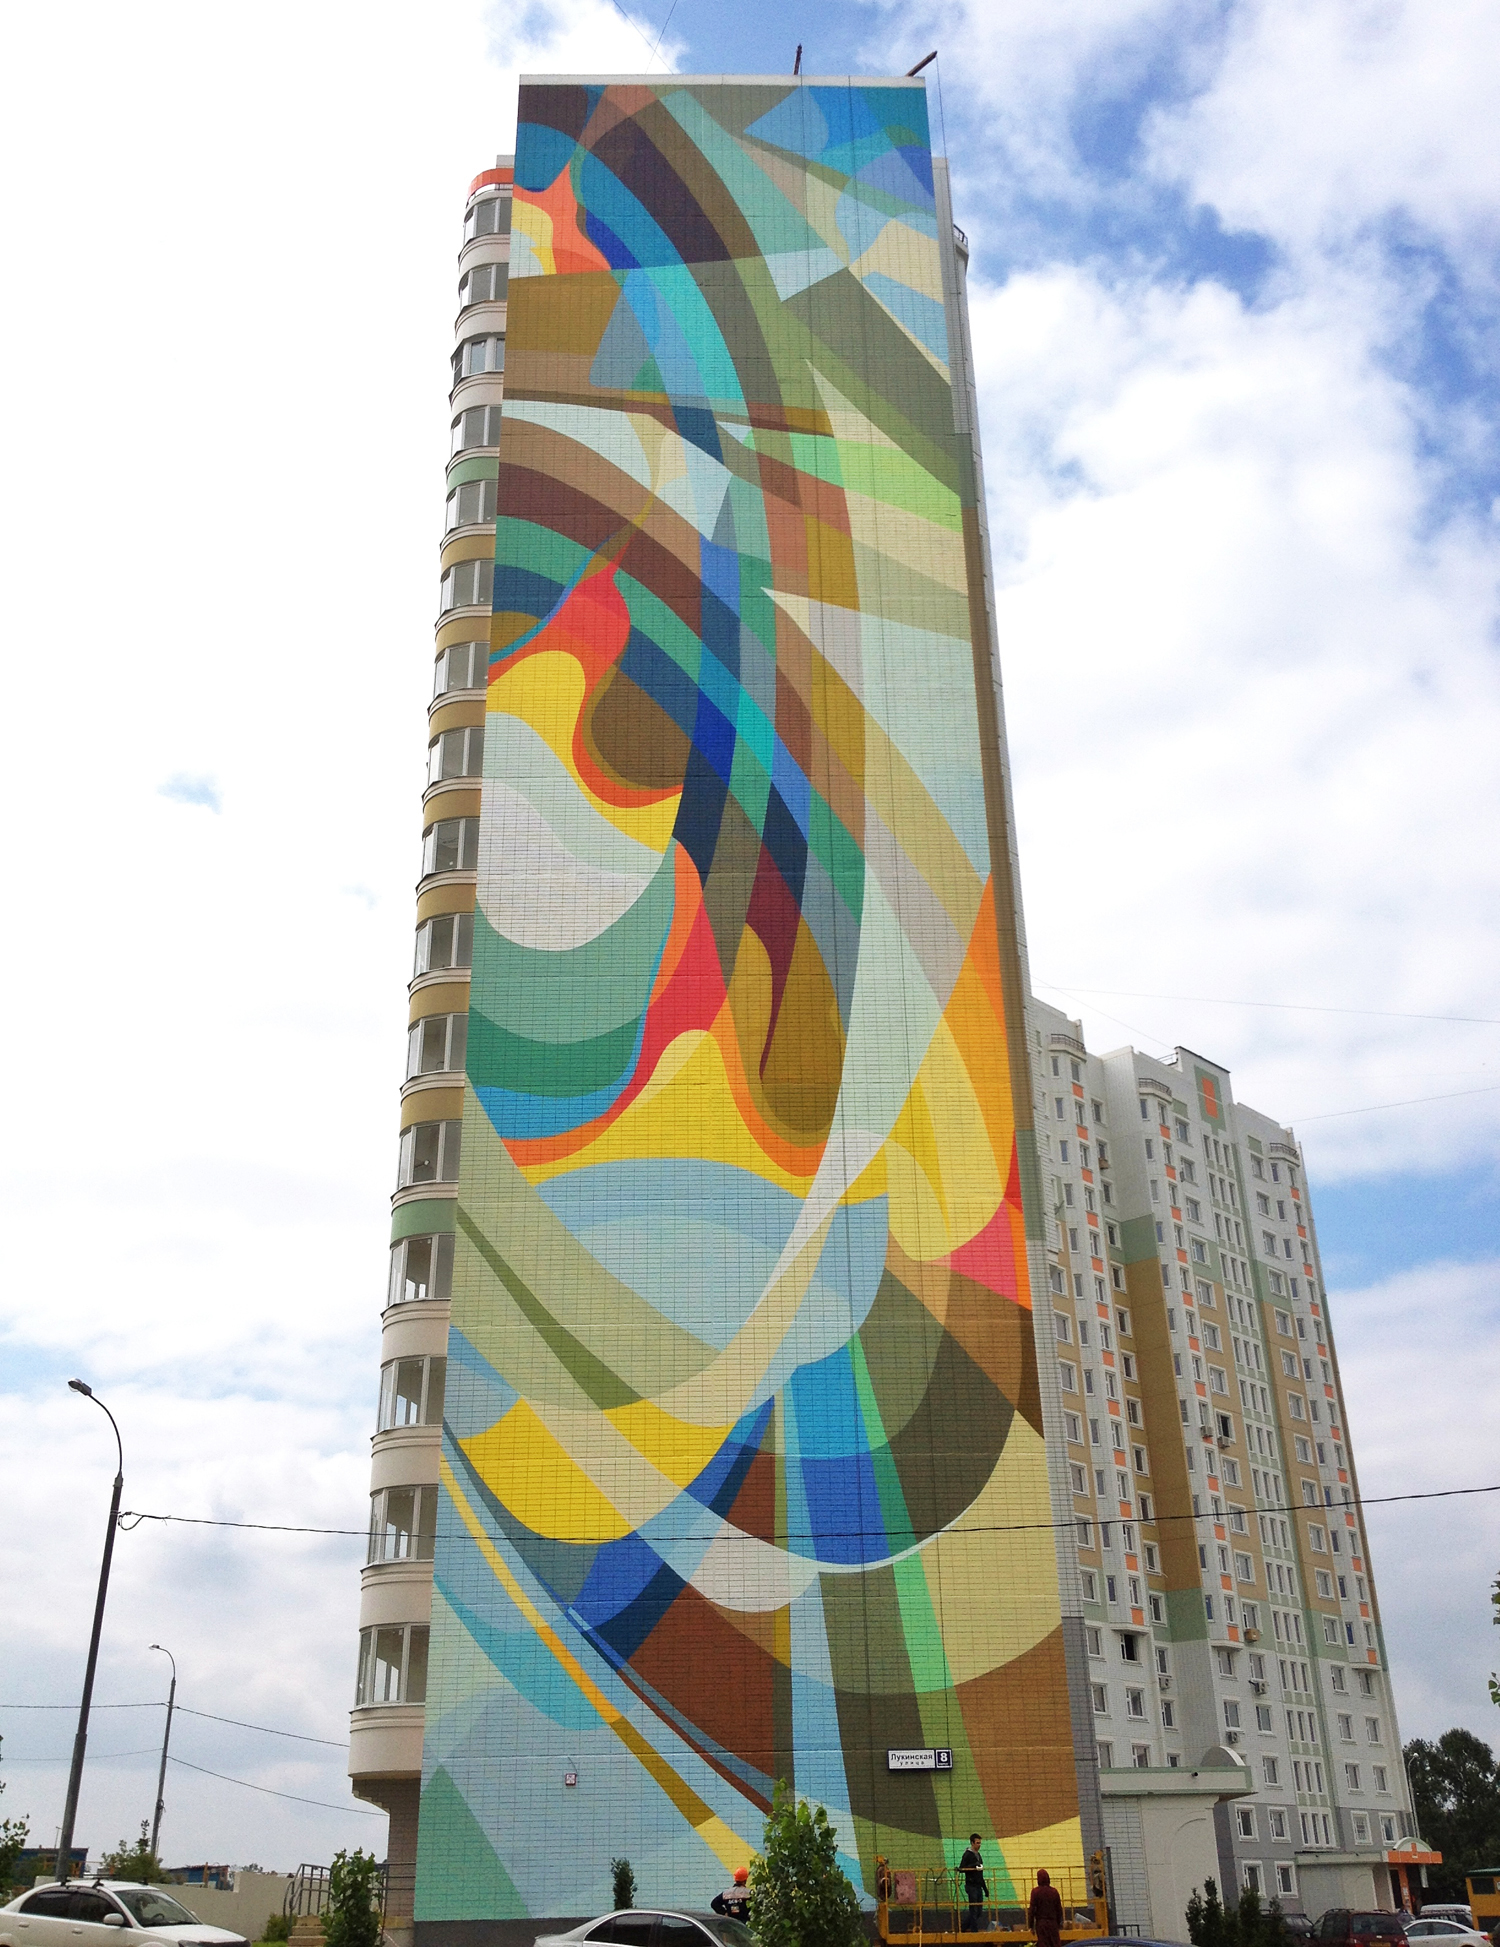 wais-new-stunning-mural-in-russia-01